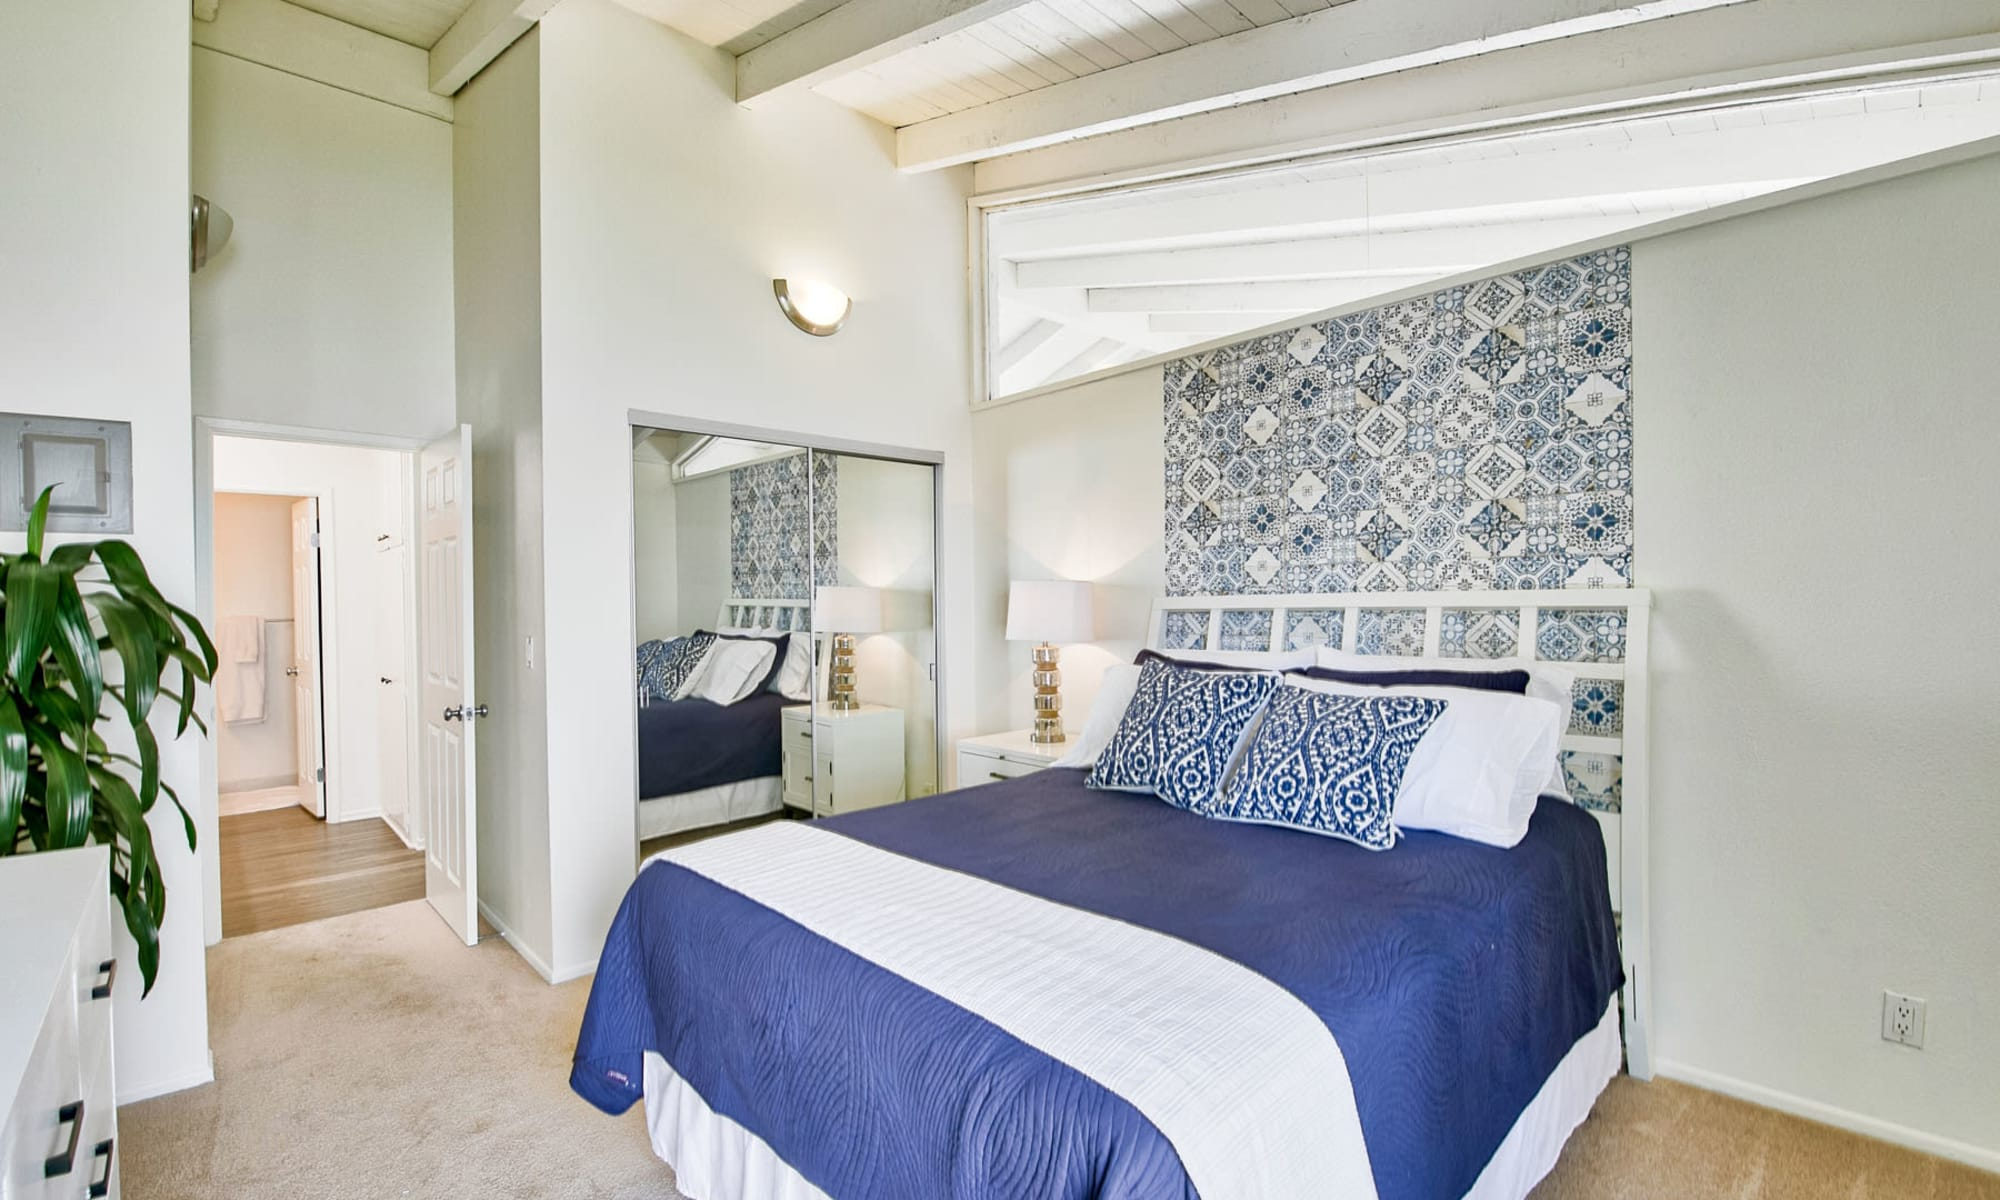 Model apartment's primary bedroom with a vaulted ceiling and plush carpeting at Mediterranean Village Apartments in Costa Mesa, California